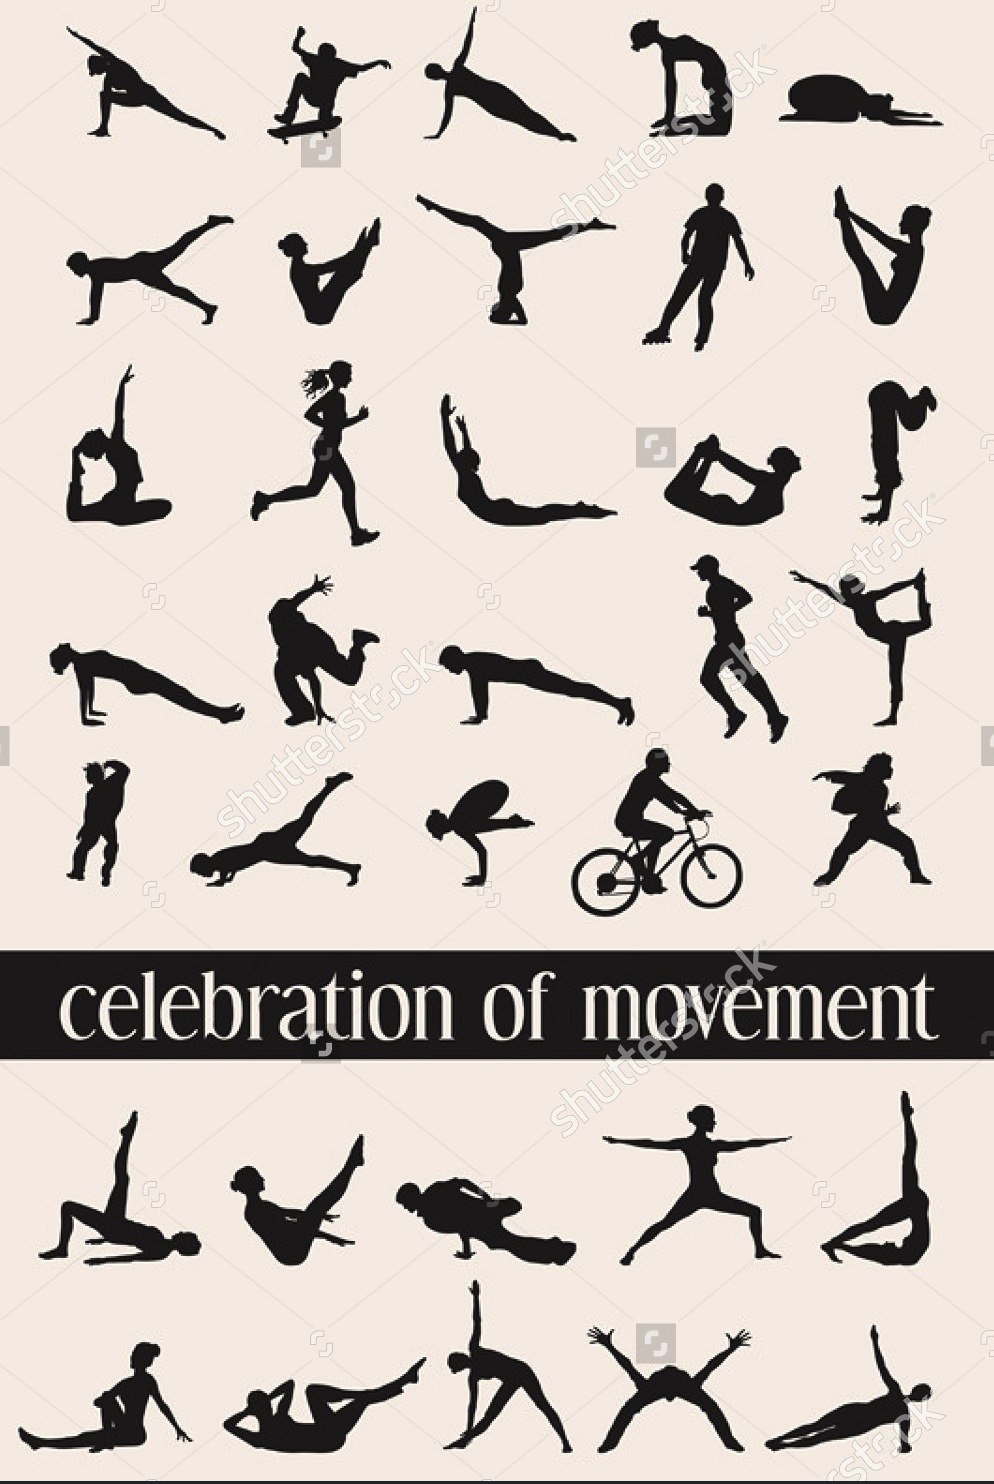 celebration-of-movement-in-human-silhouettes-in-various-moves-117395377